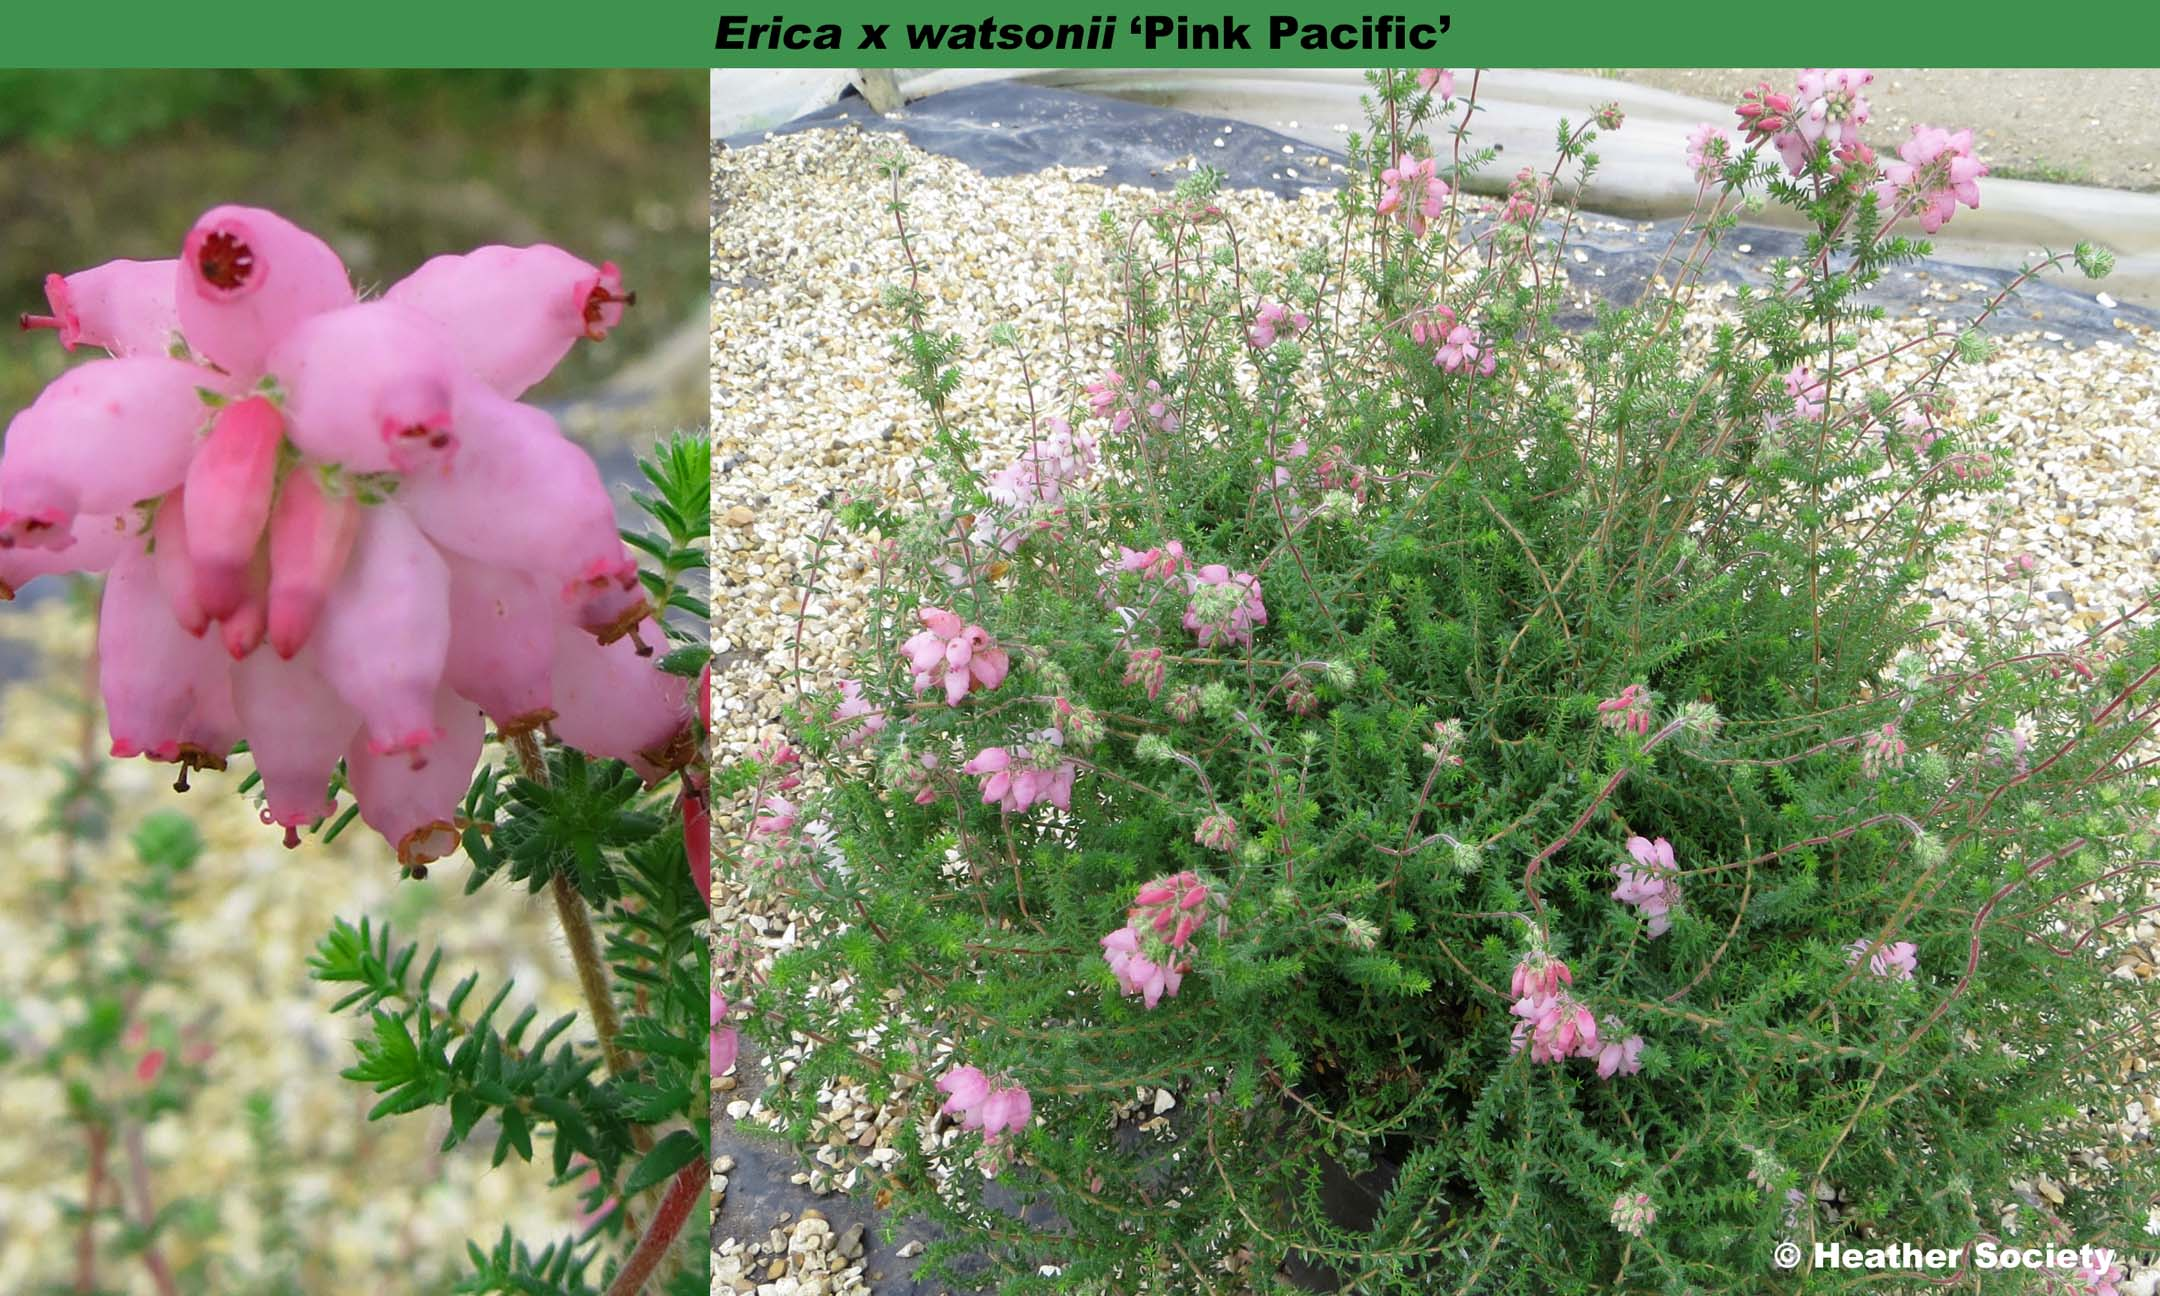 'Pink Pacific'